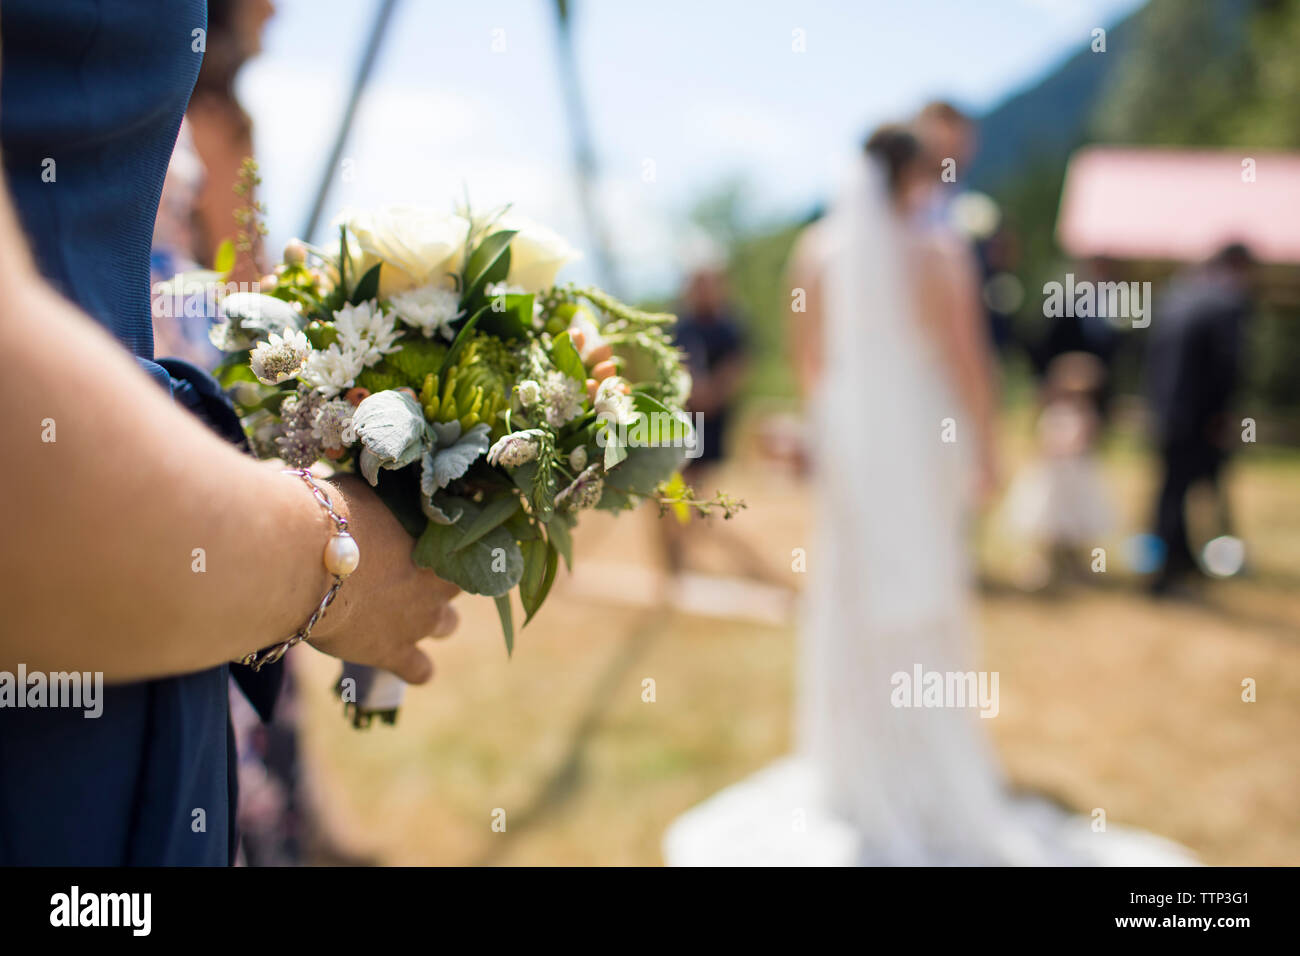 Midsection of bridesmaid holding bouquet while standing against couple in wedding ceremony - Stock Photo